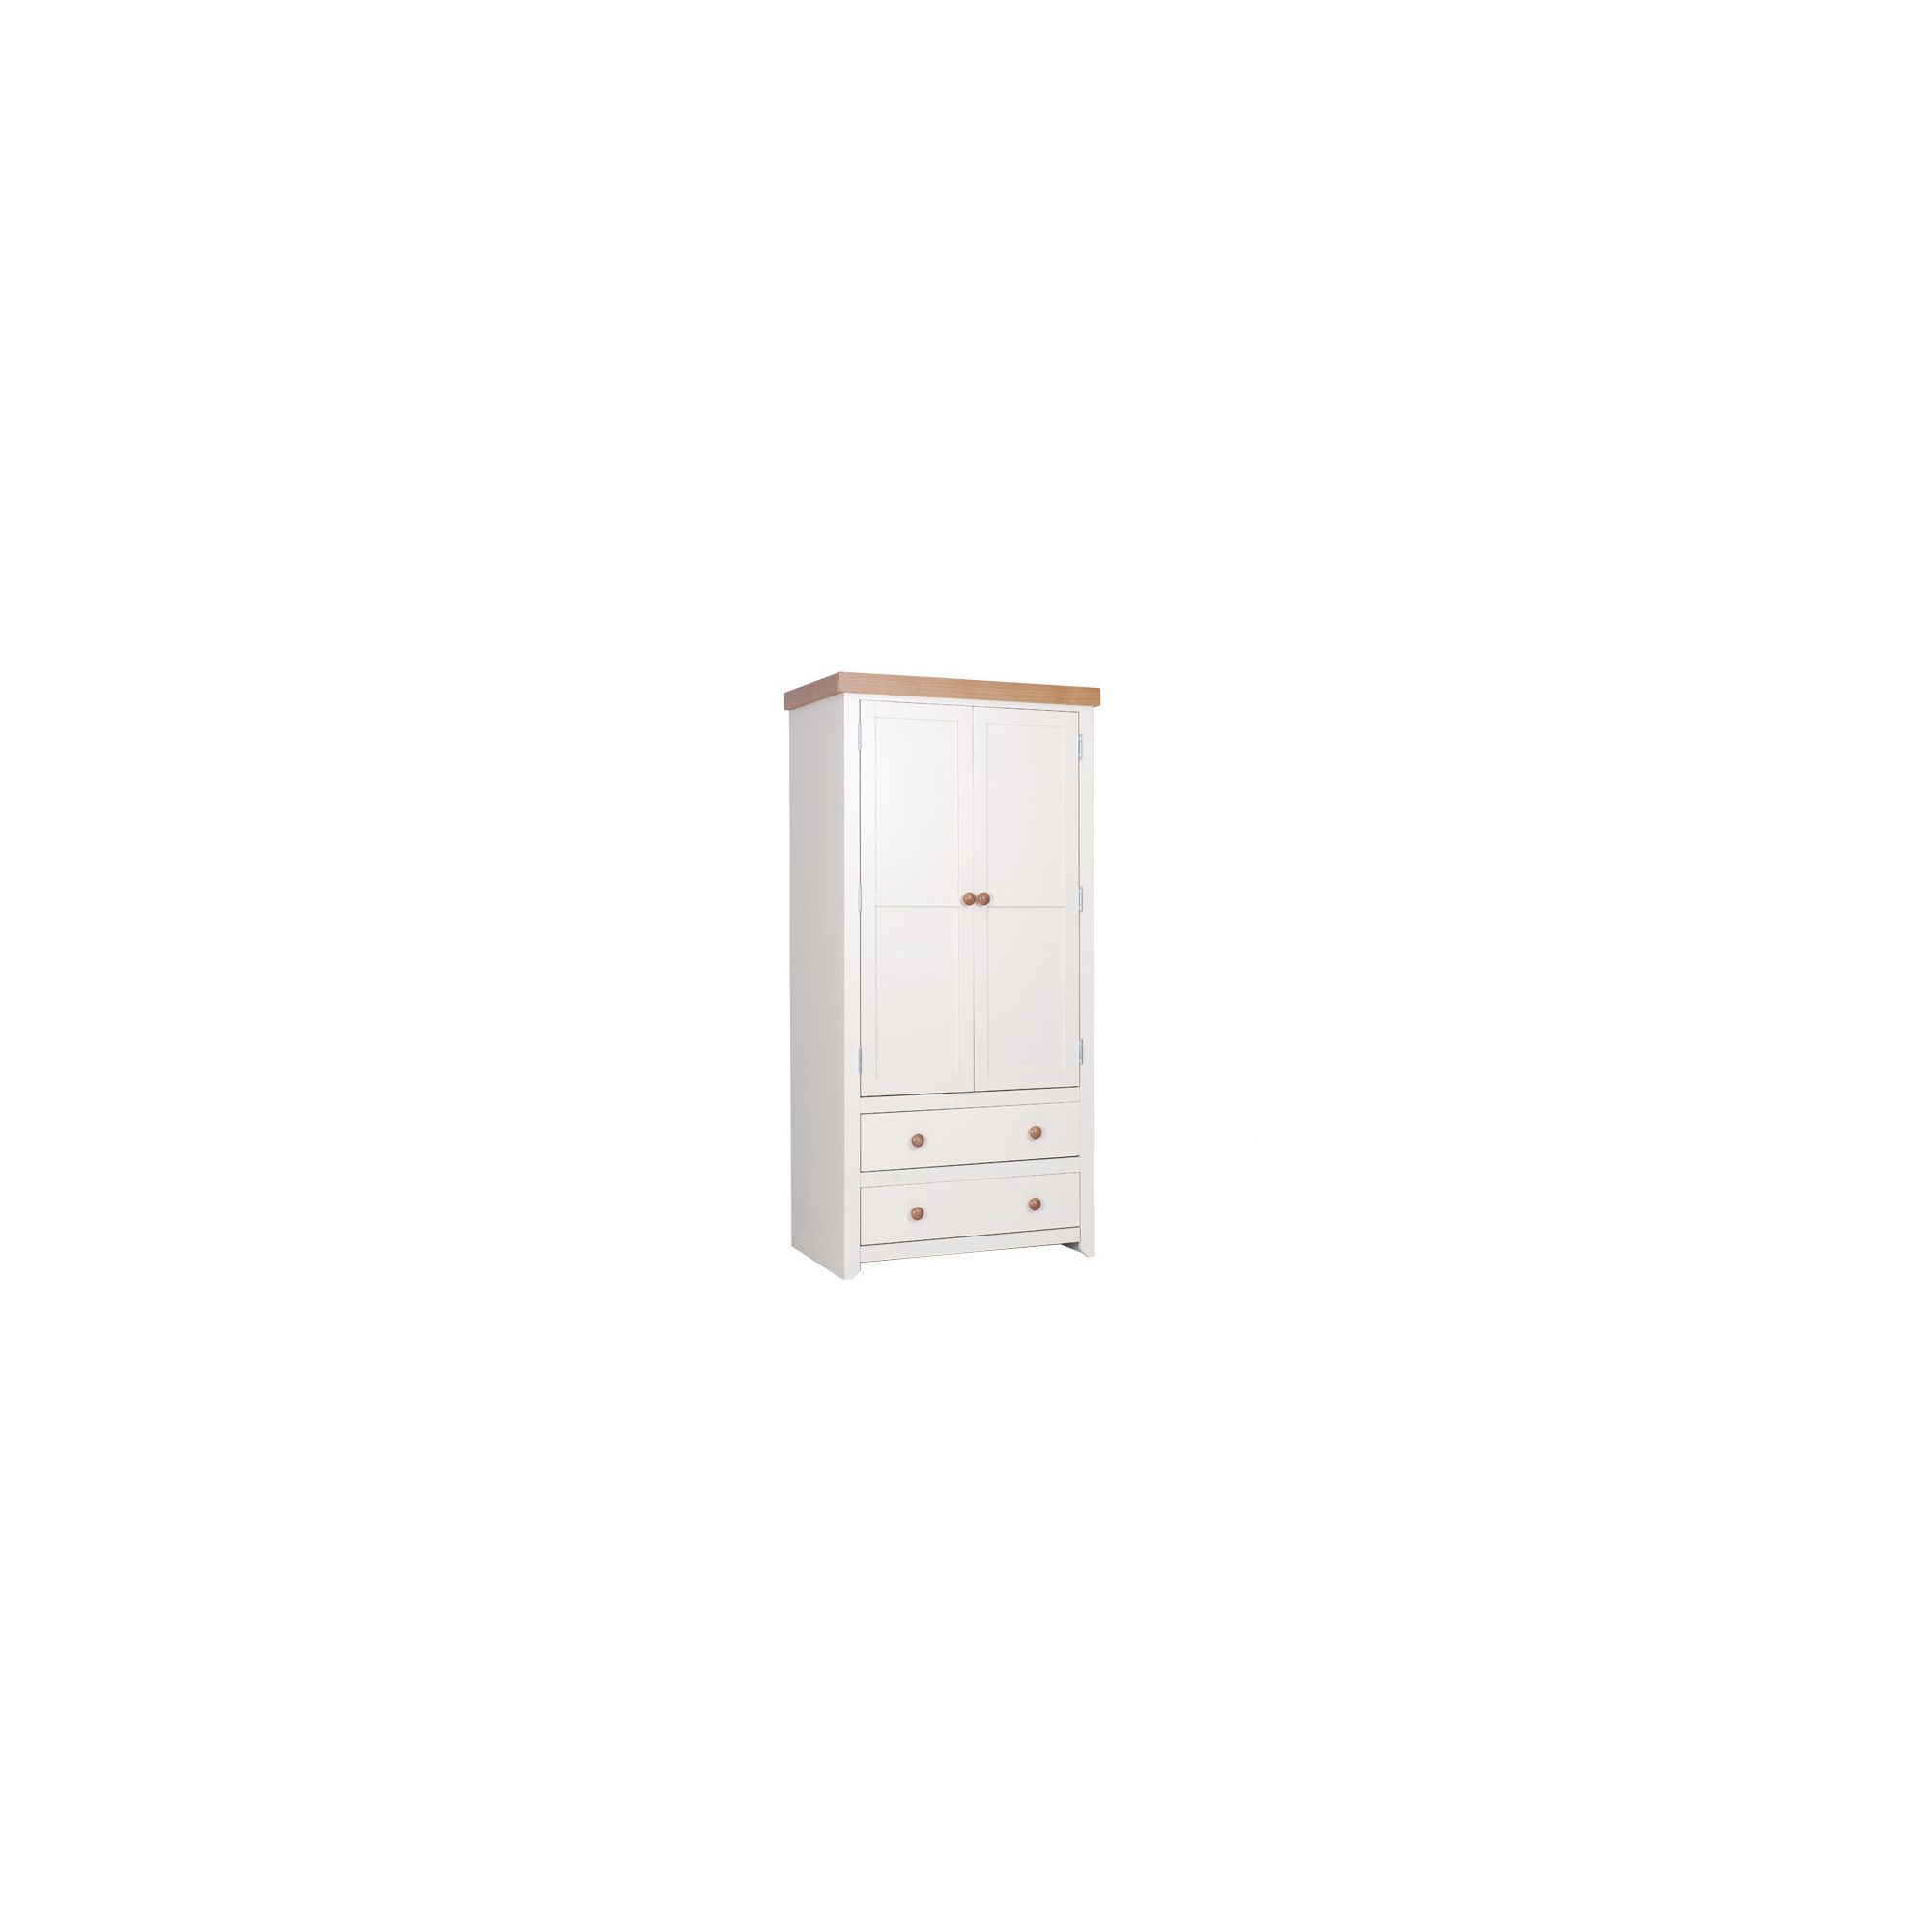 Home Essence Jamestown 2 Door 2 Drawer Wardrobe at Tescos Direct